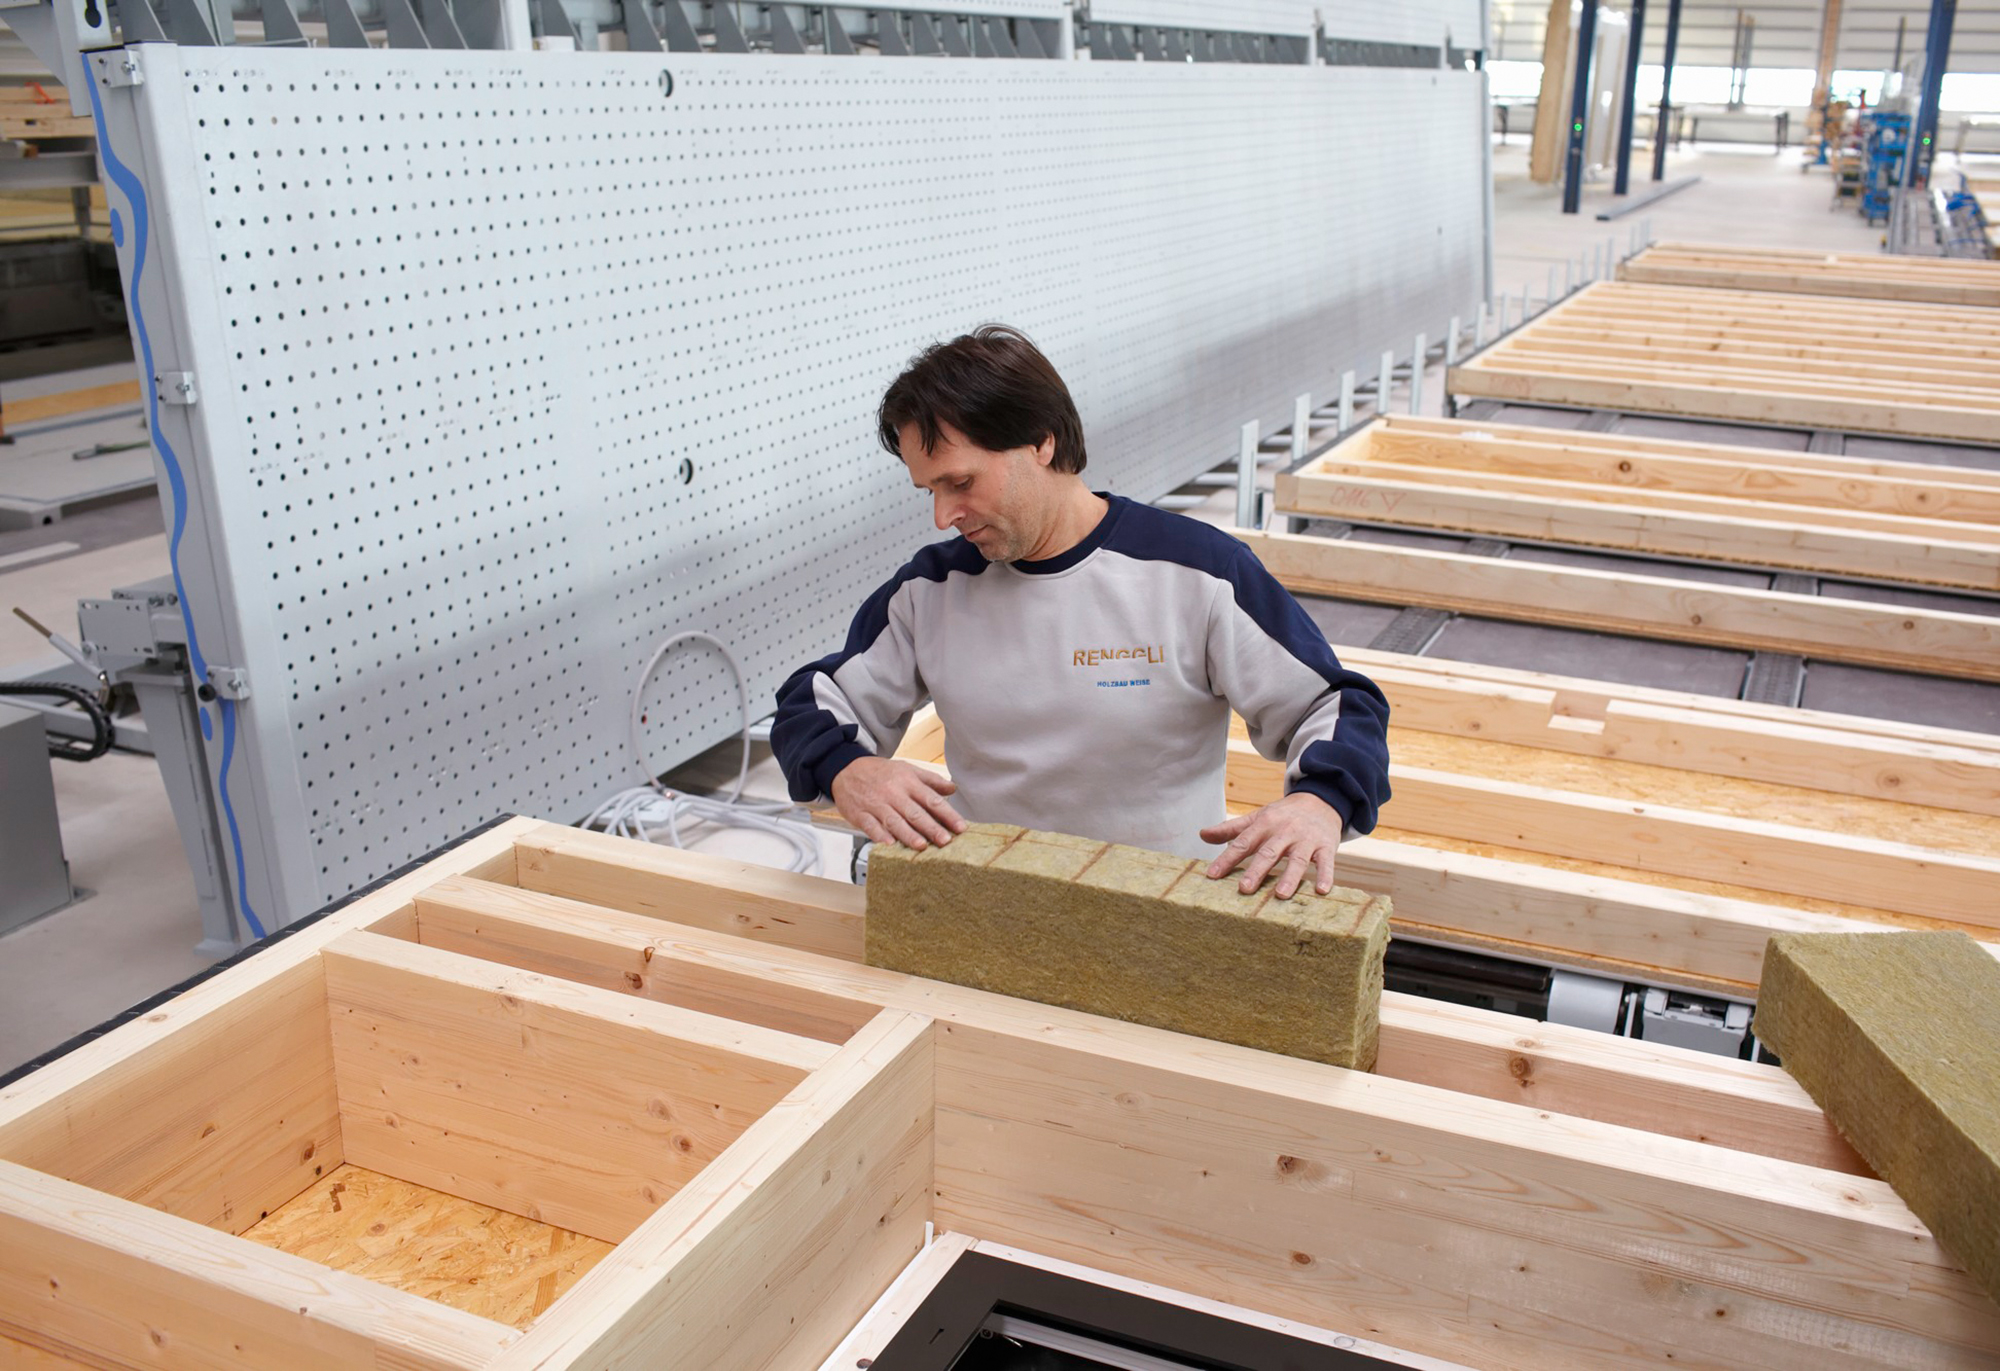 A worker is placing insulation material into the timber building elements in the Renggli factory